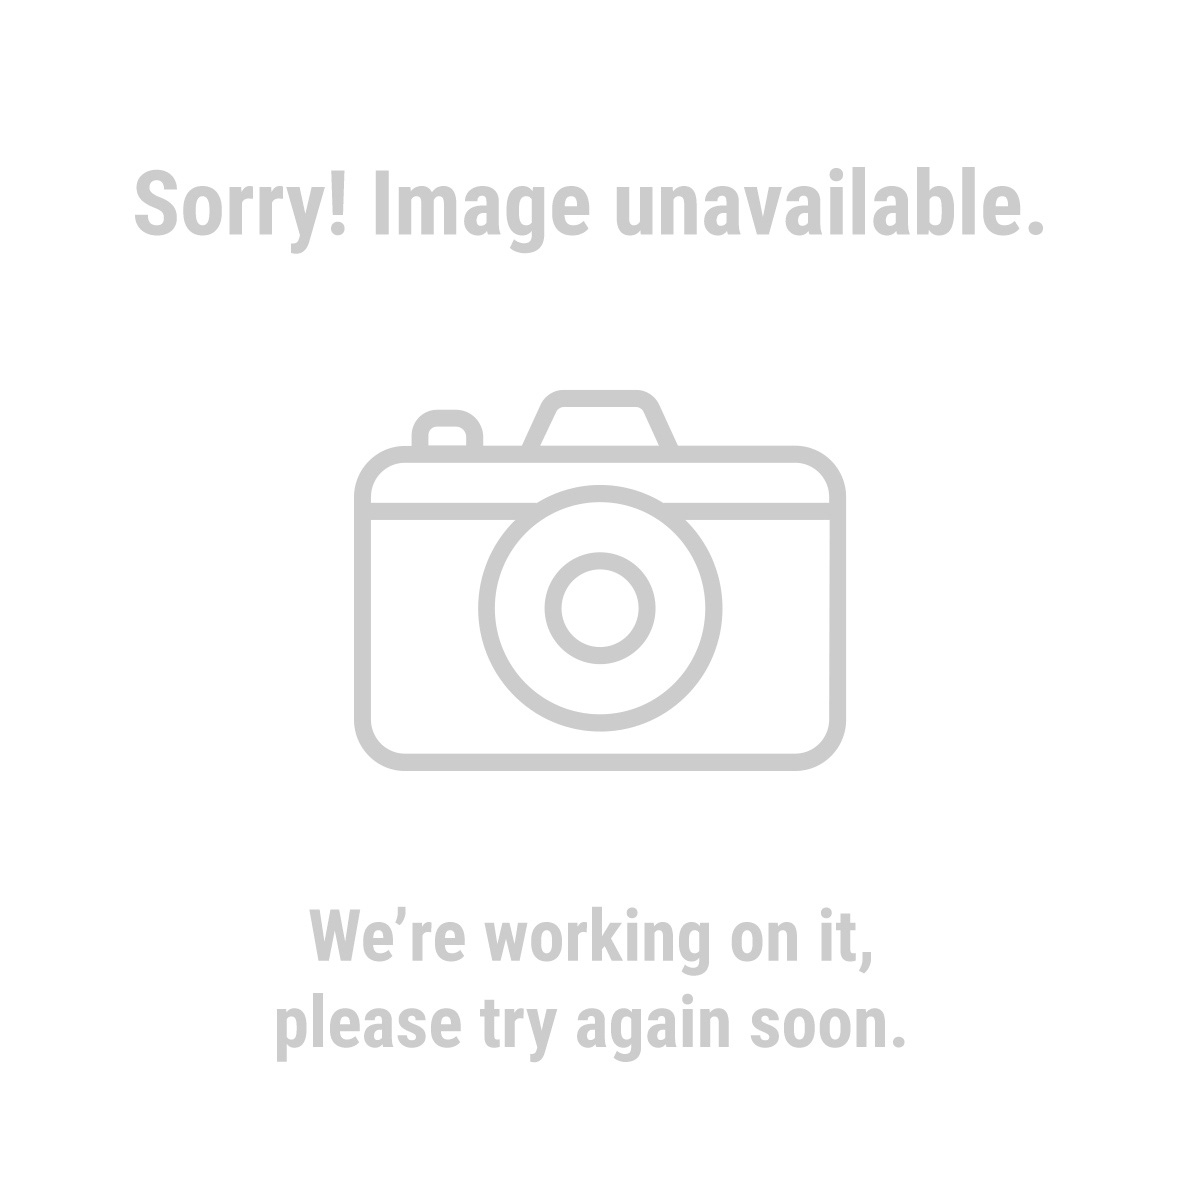 HFT 99891 25 Ft. Round Stretch Cord with Adjustable Hooks